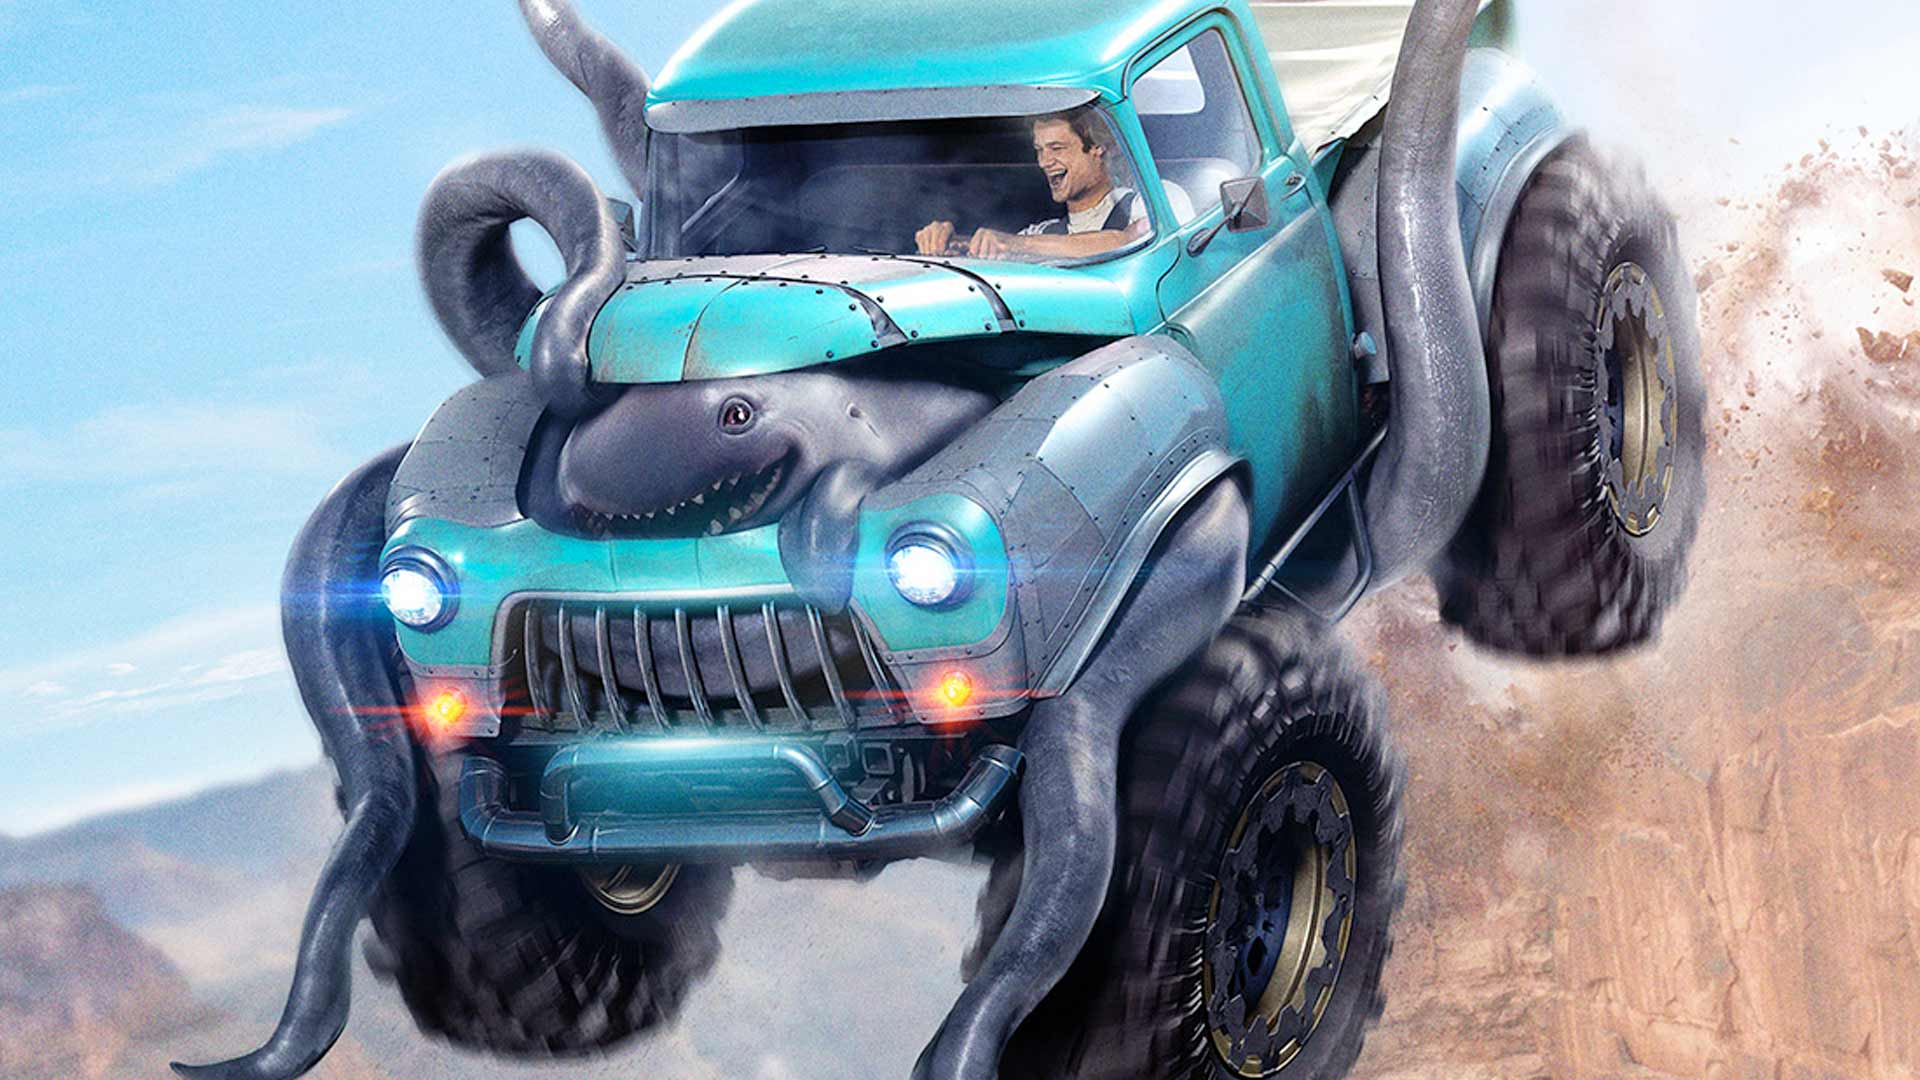 Monster Truck Games And Car Games